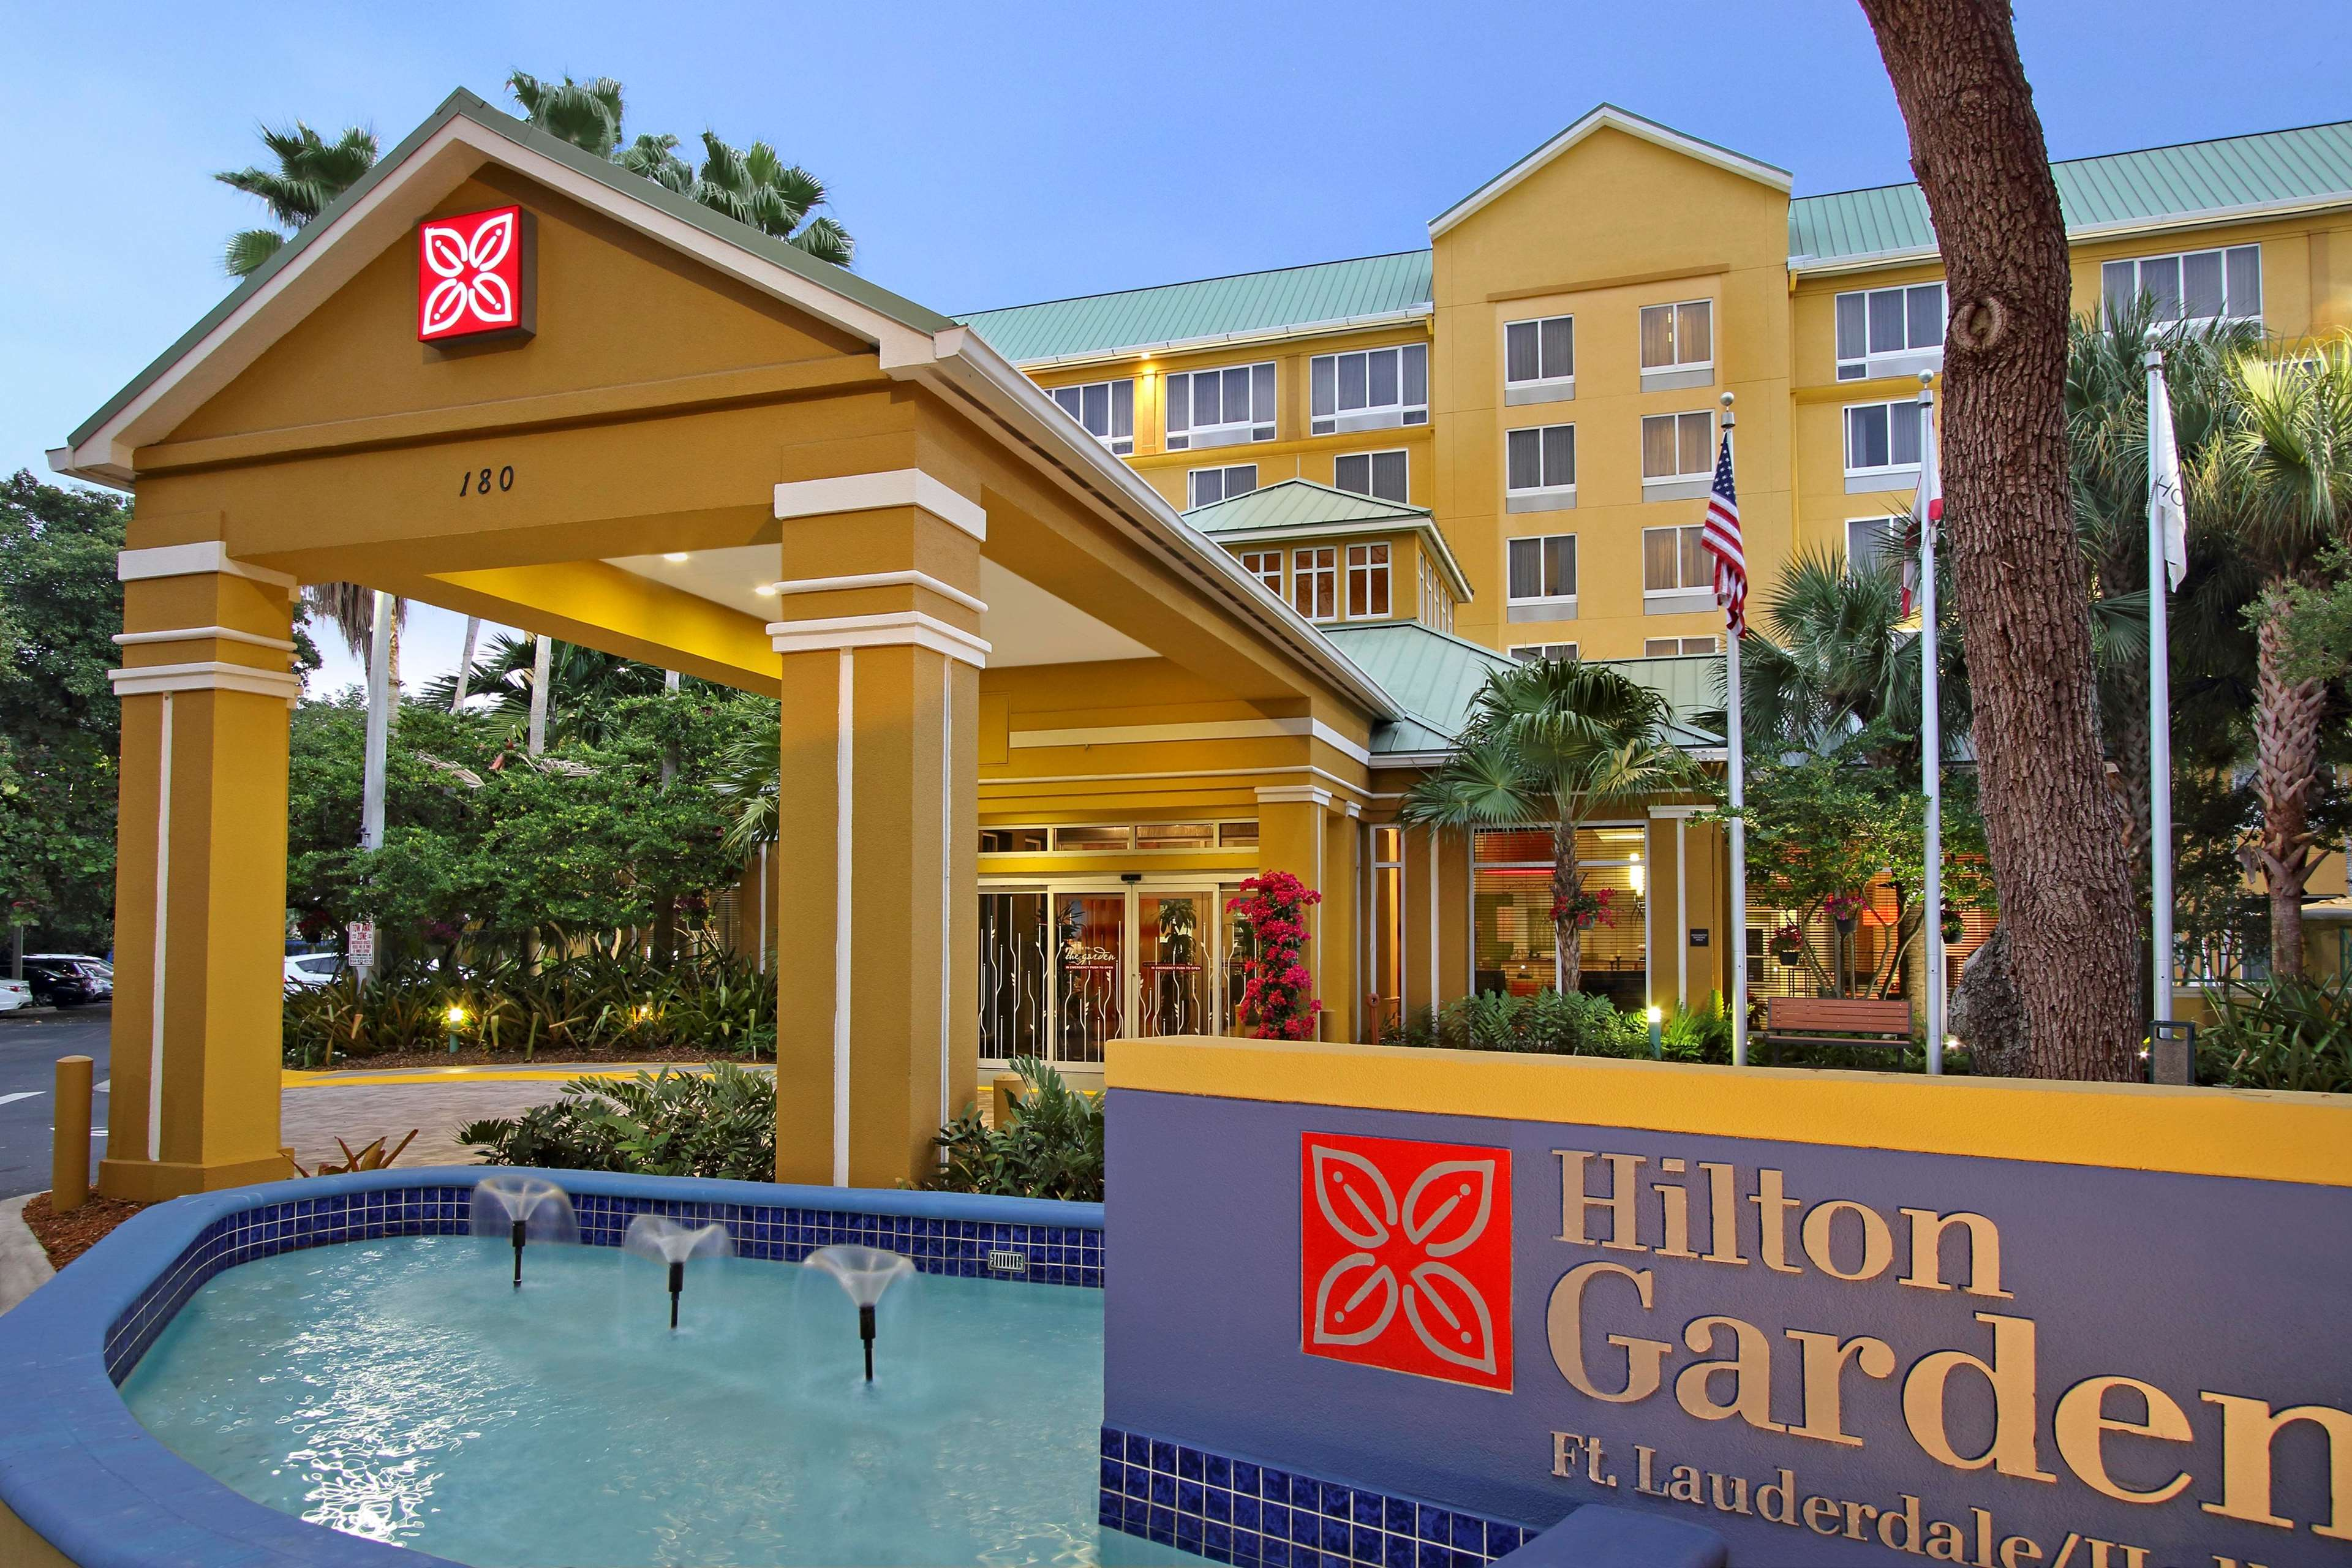 Hilton garden inn ft lauderdale airport cruise port at - Hilton garden inn ft lauderdale fl ...